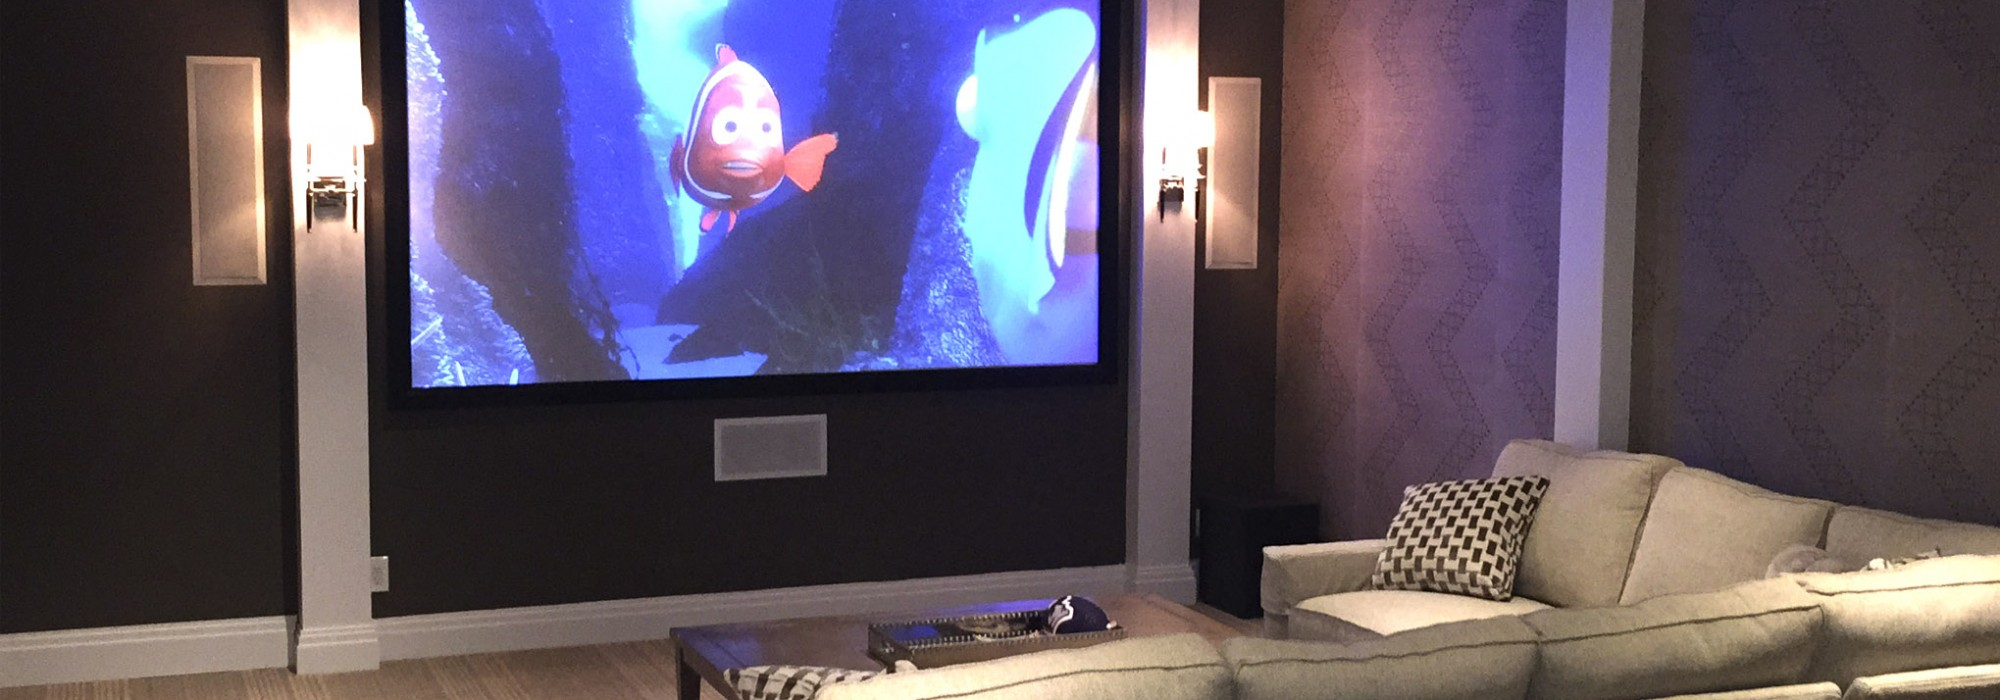 Smart Home Automation Systems Audio Visual Long Island Nyc